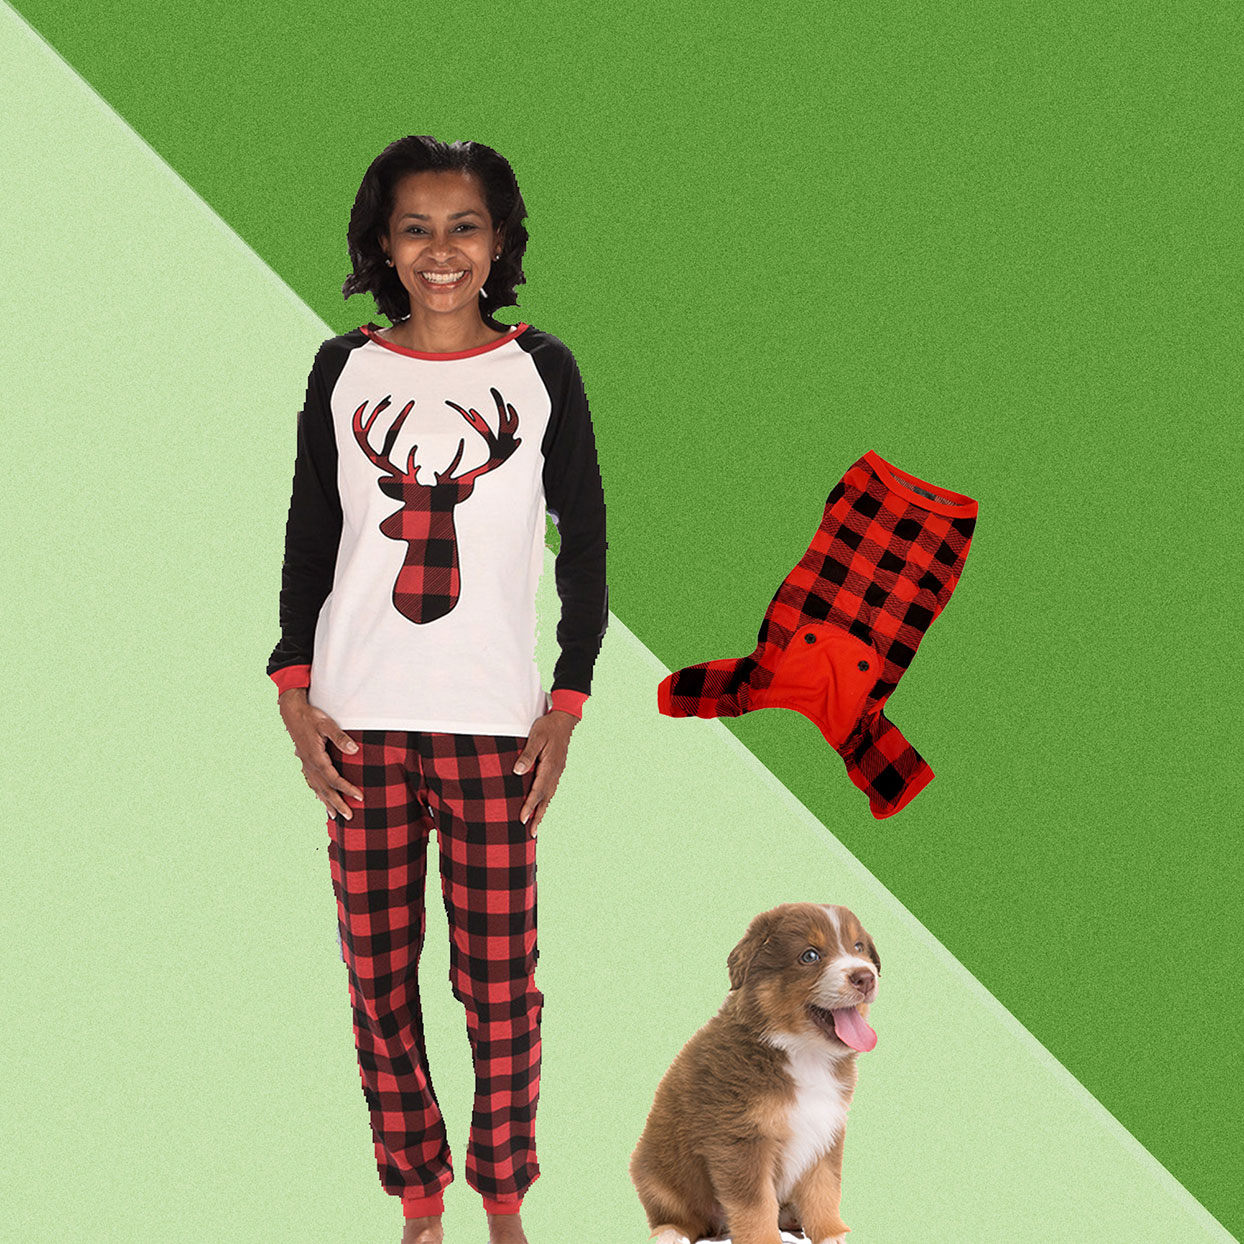 Aldi Is Selling Matching Holiday Pajamas for You and Your Pet—and They're Under $20